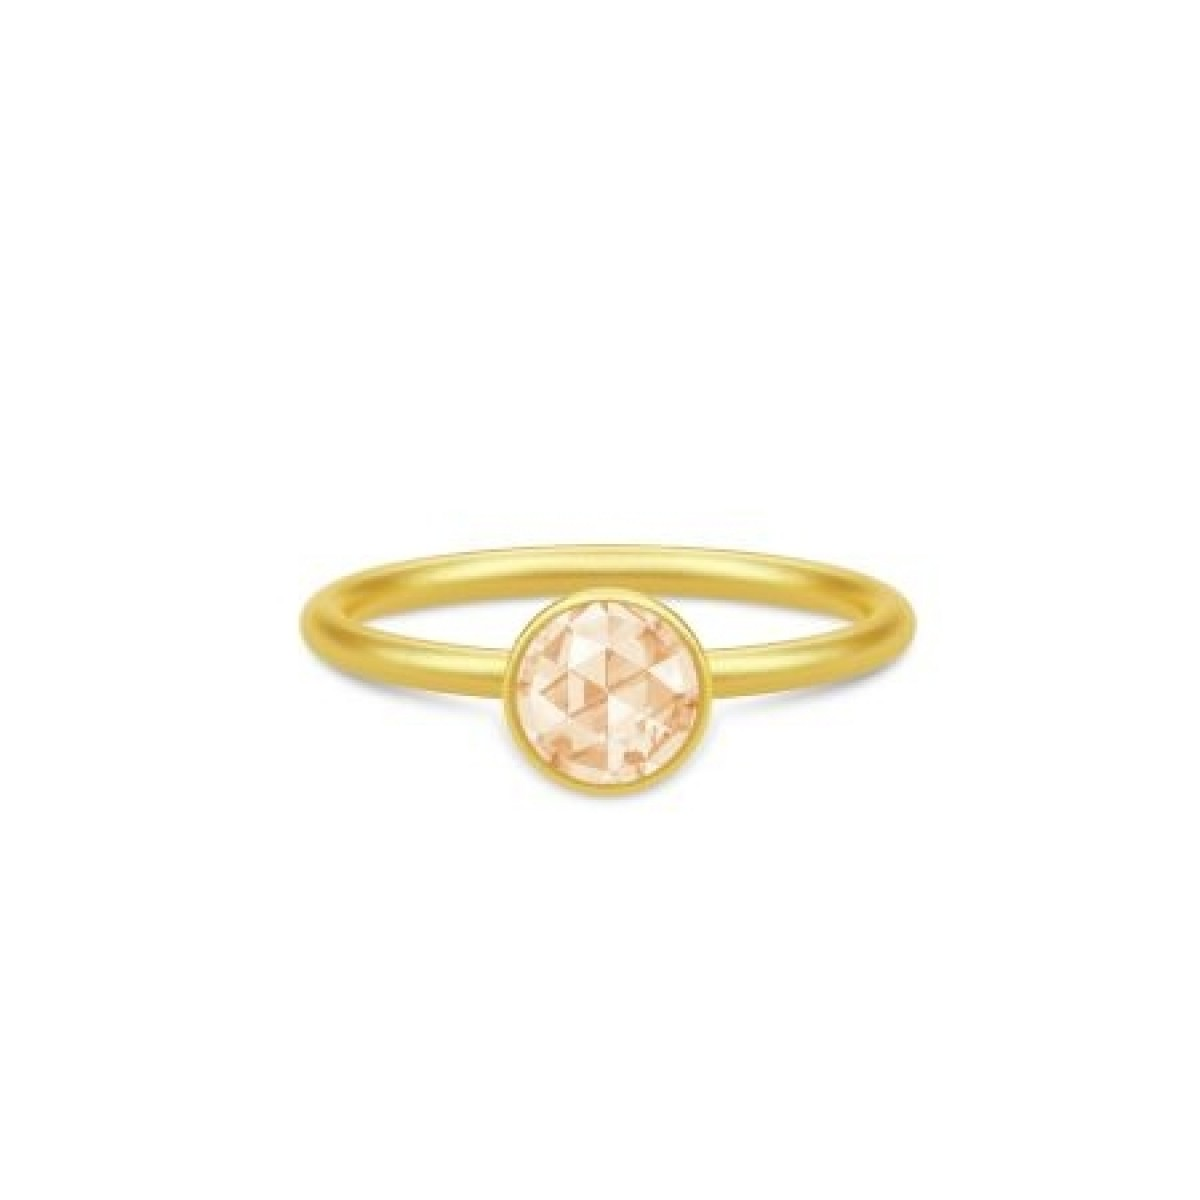 Julie Sandlau LILLE COCKTAIL ring forgyldt RI256GDCHCZ - champagne